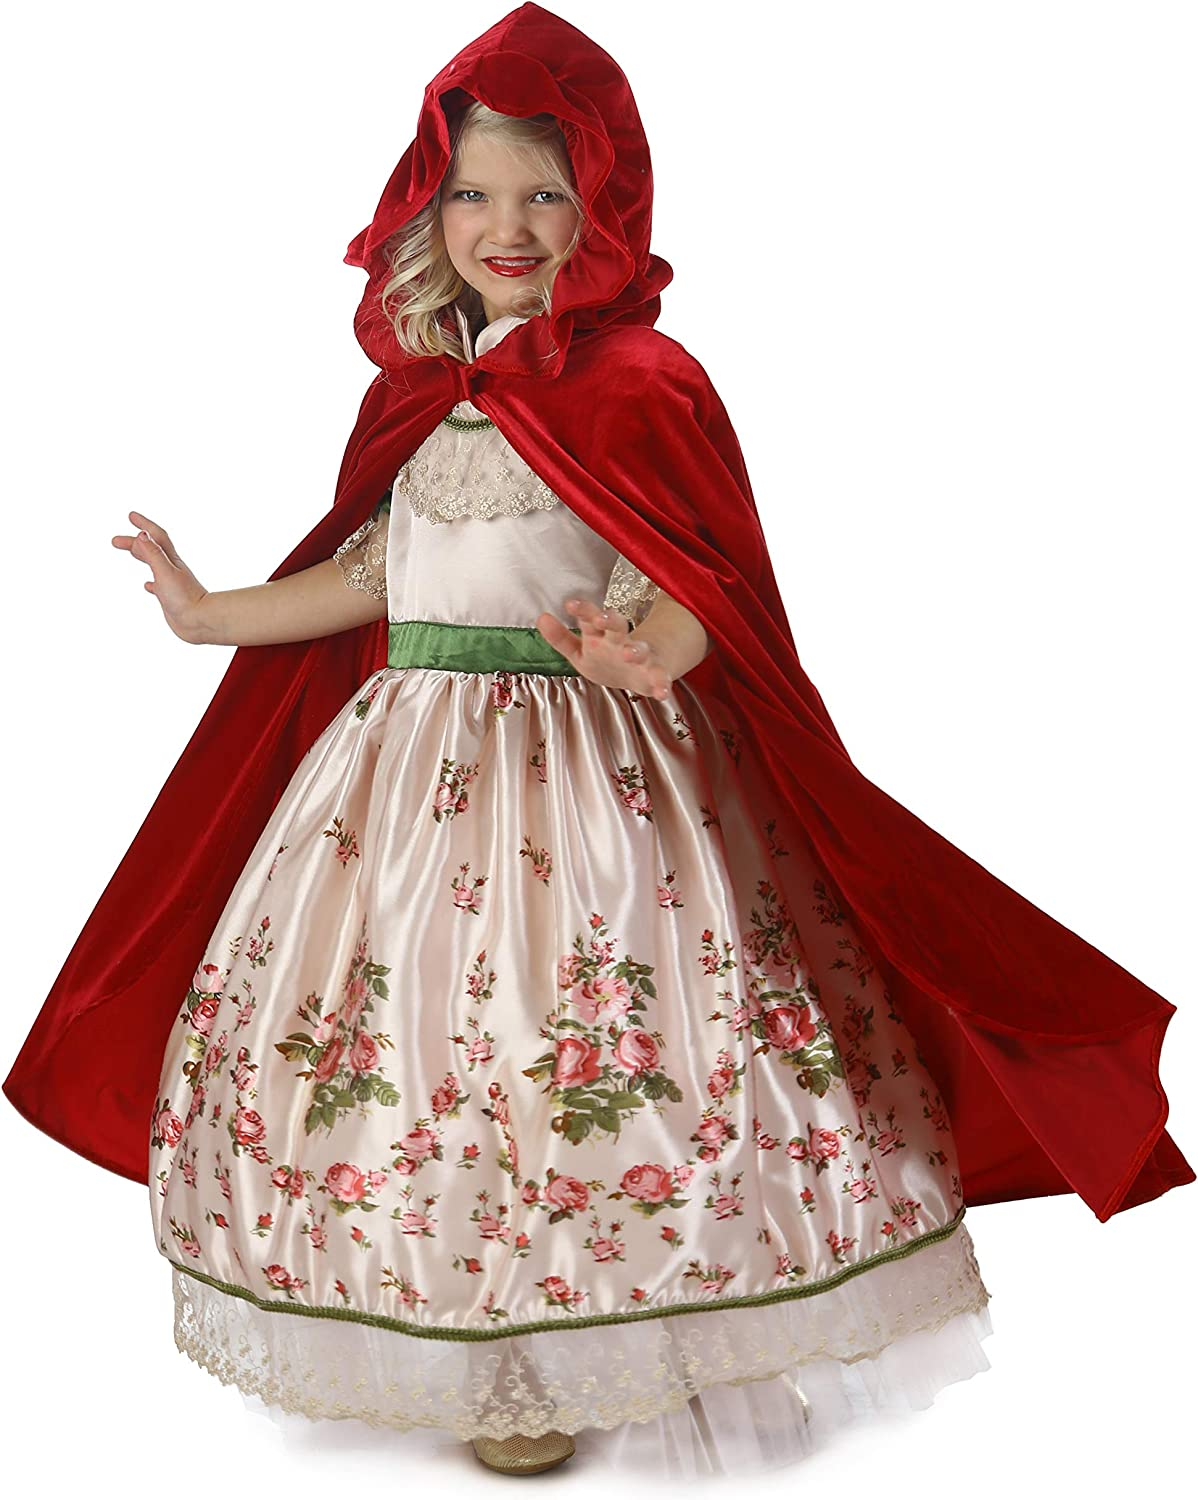 Princess Paradise Vintage Red Riding Hood Costume